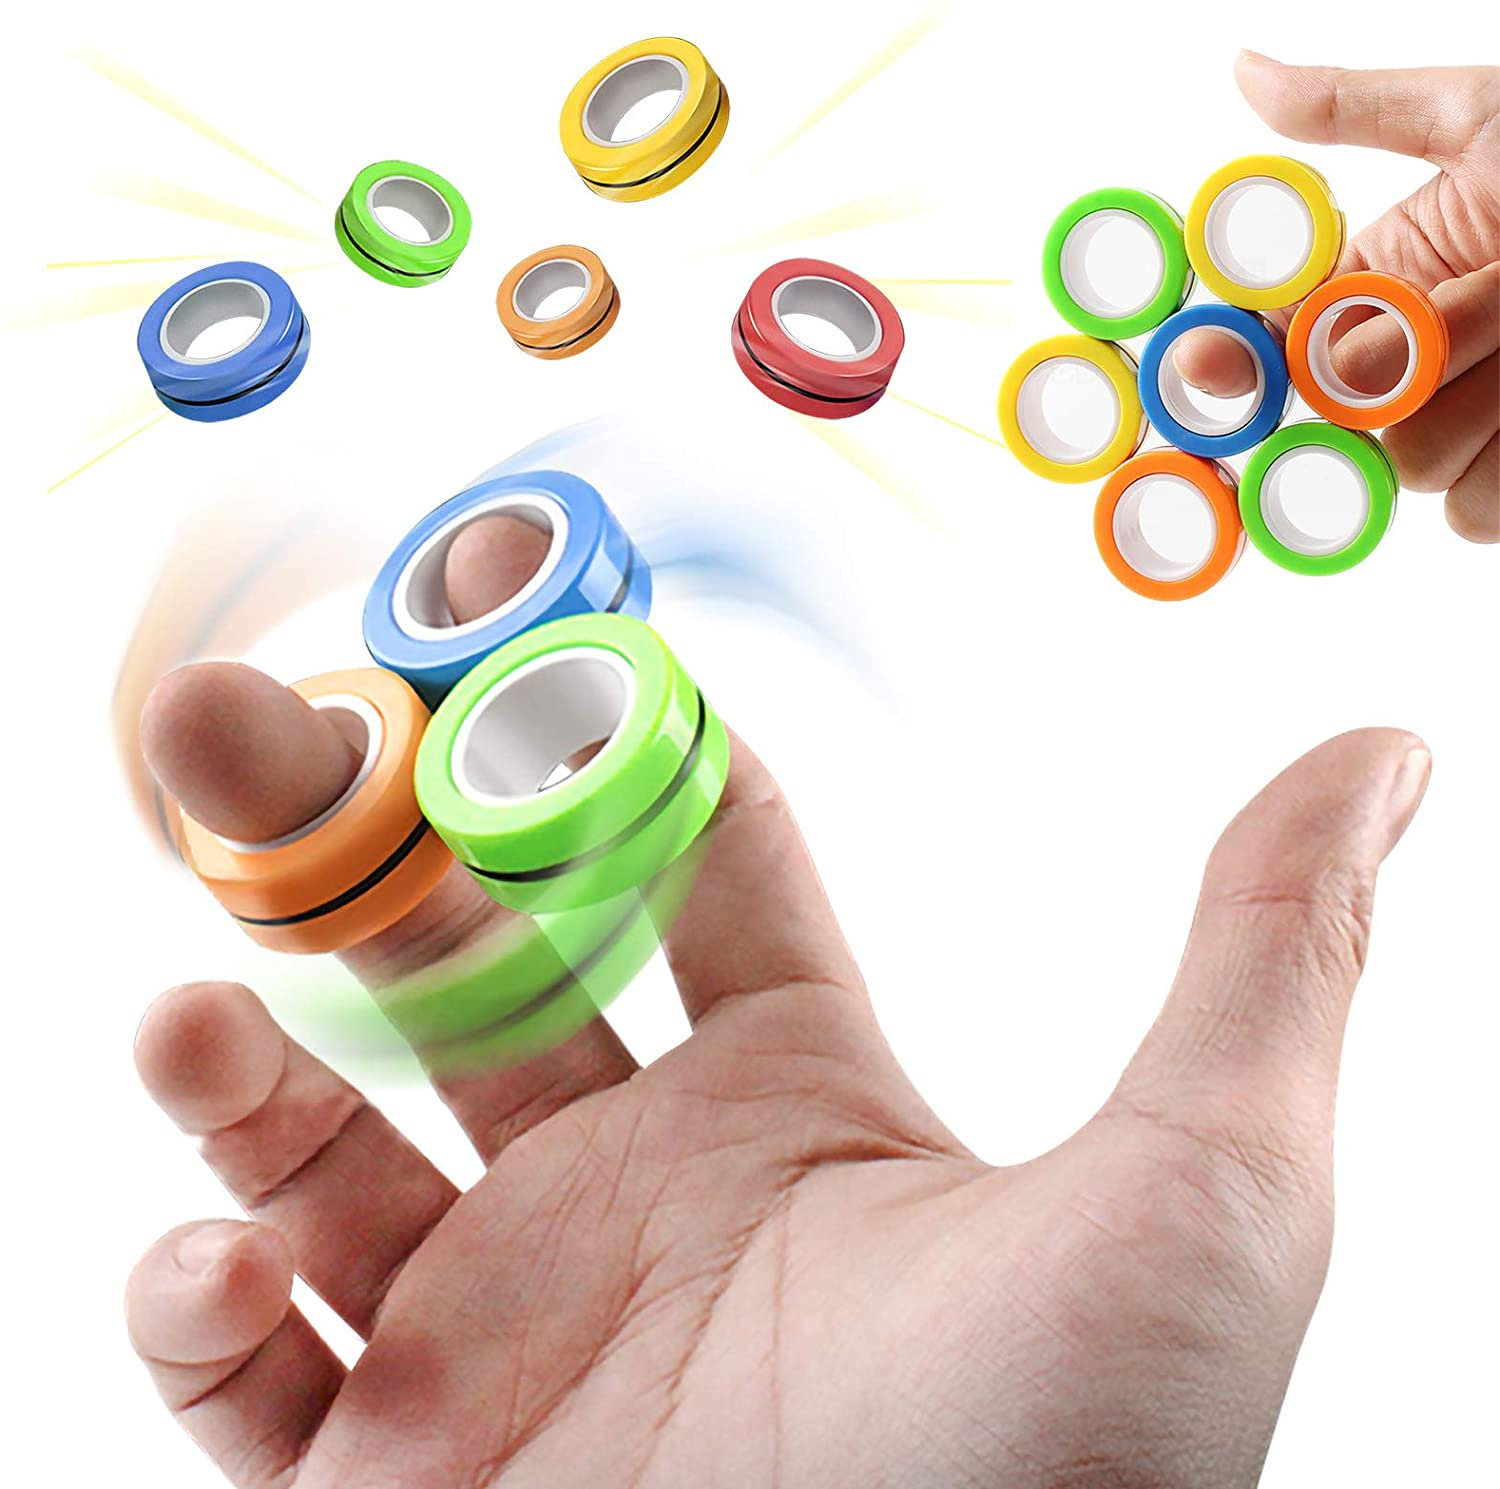 3pcs Magnetic Ring Fidget Toys for Stress Relief Anti Anxiety ADHD Focus Boredom Magnetic Blocks for Kids Hand Spinner|Fidget Spinner| - AliExpress